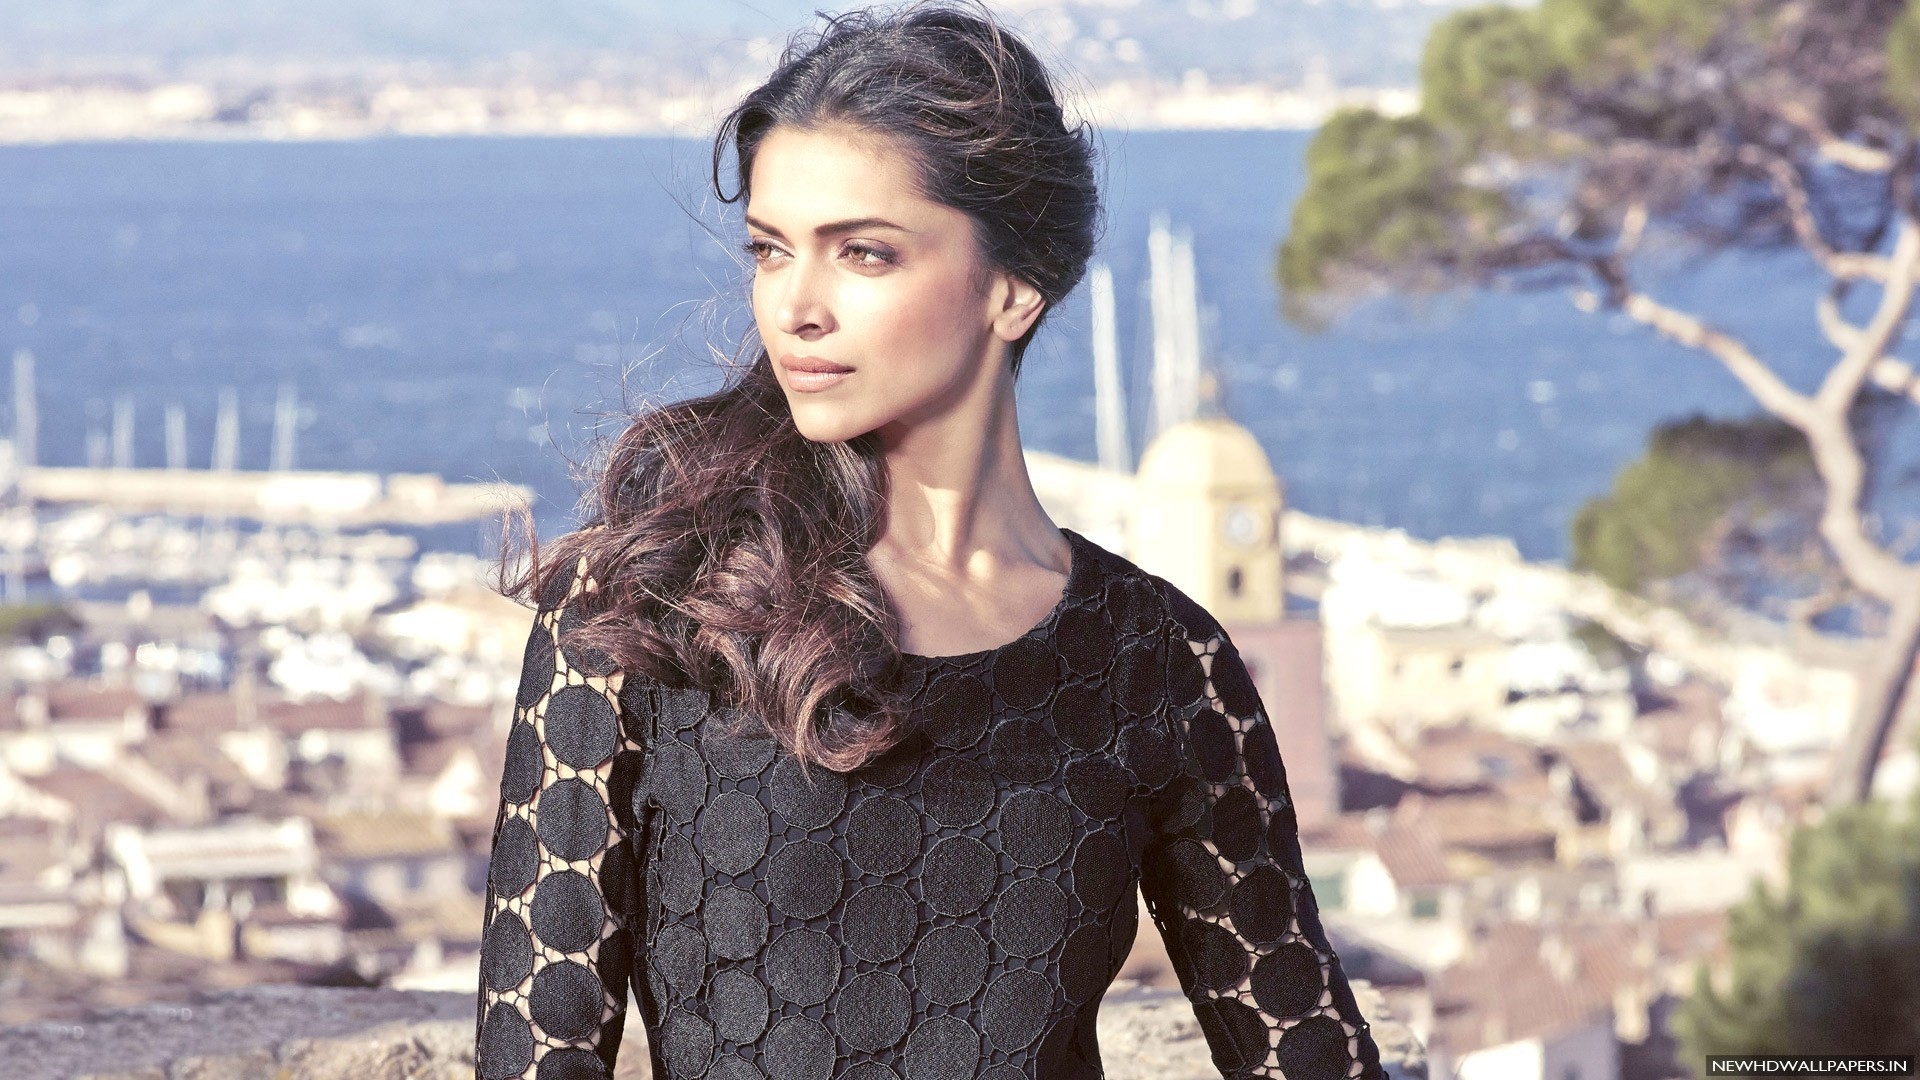 beauty deepika padukone images hd